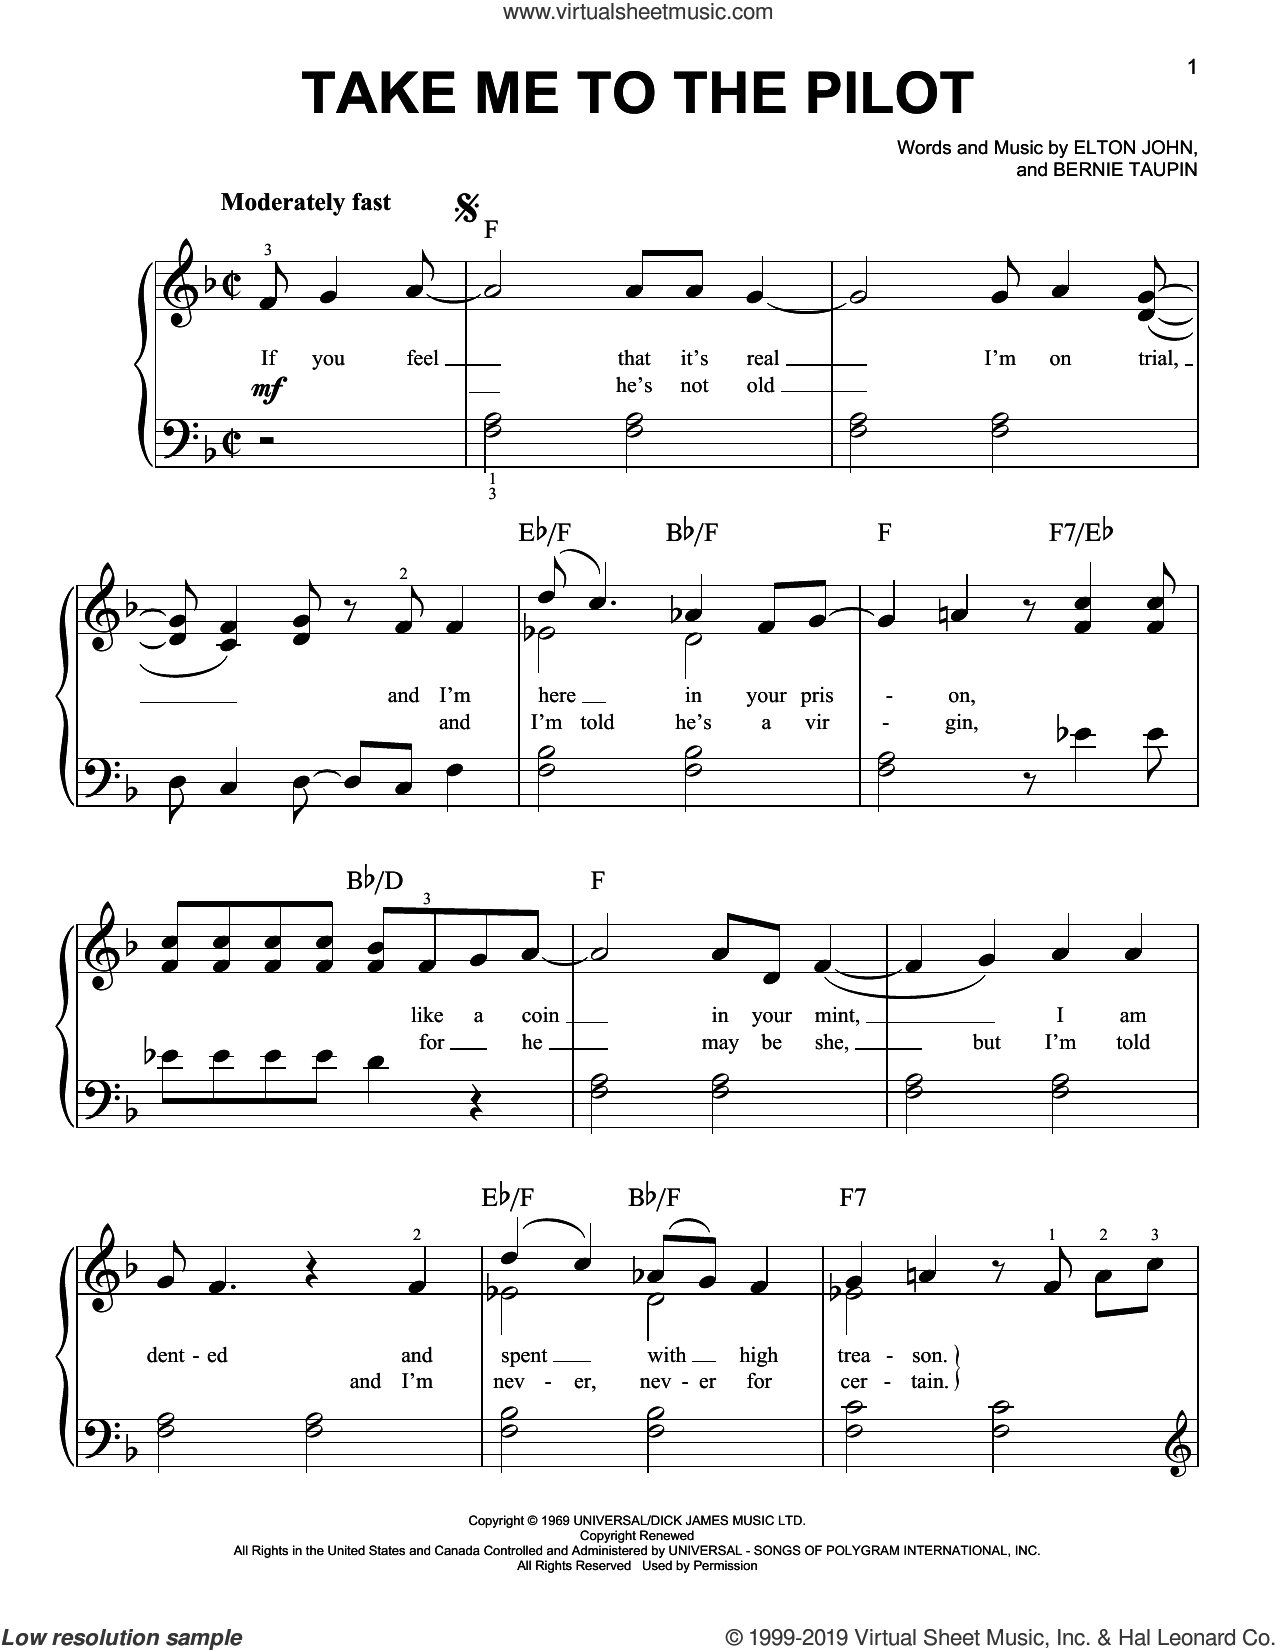 Take Me To The Pilot (from Rocketman) sheet music for piano solo by Taron Egerton, Bernie Taupin and Elton John, easy skill level